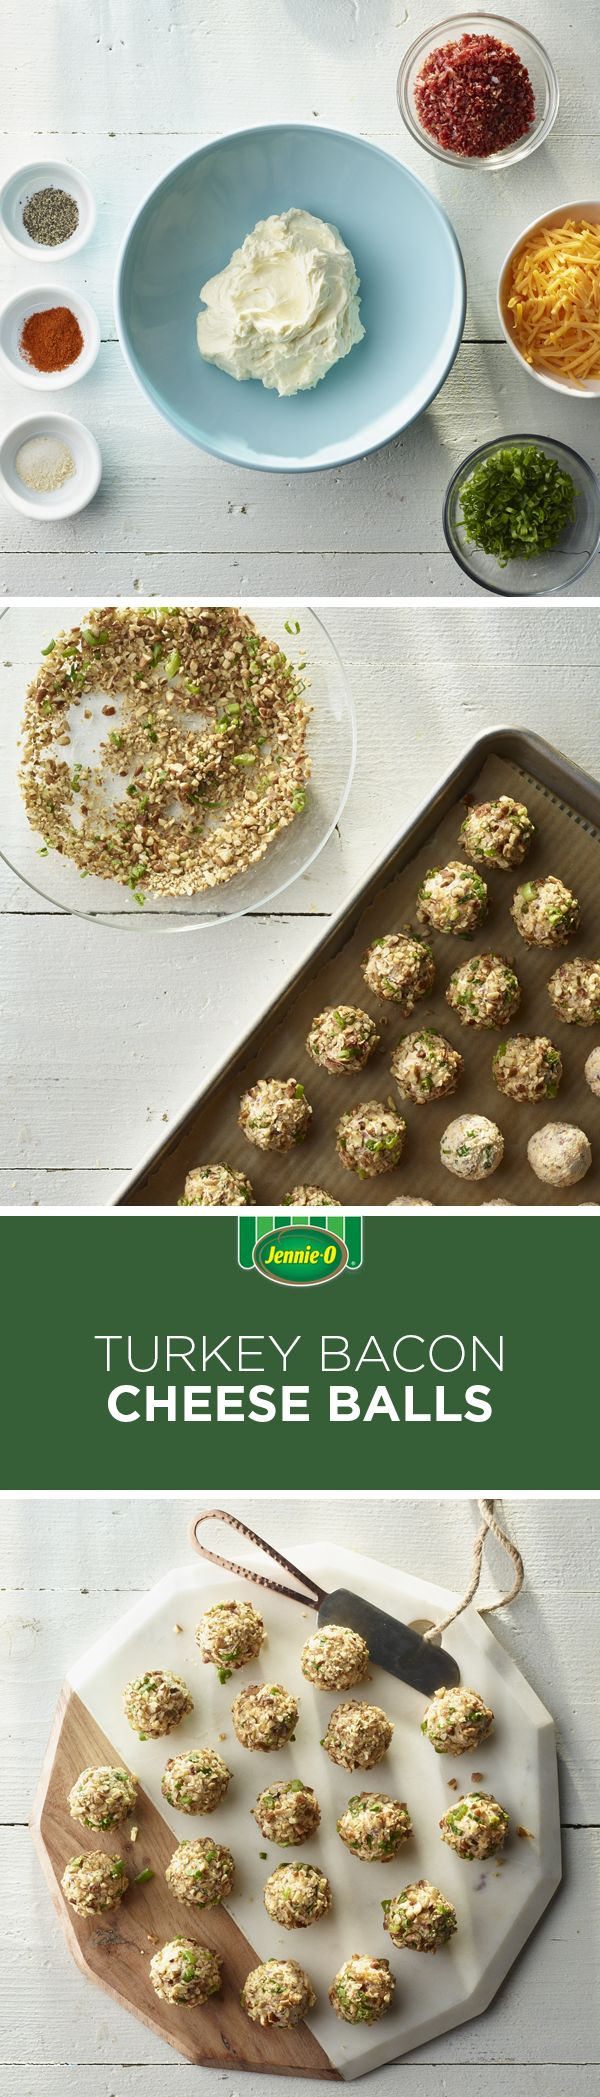 Turkey bacon & cheese -what more could you want in an appetizer? Try it with JENNIE-O® Turkey from the deli!   JENNIE-O® Turkey   Cheese Balls   Turkey Bacon   Bacon Appetizers   Easy Entertaining   Hosting   Easy Appetizers